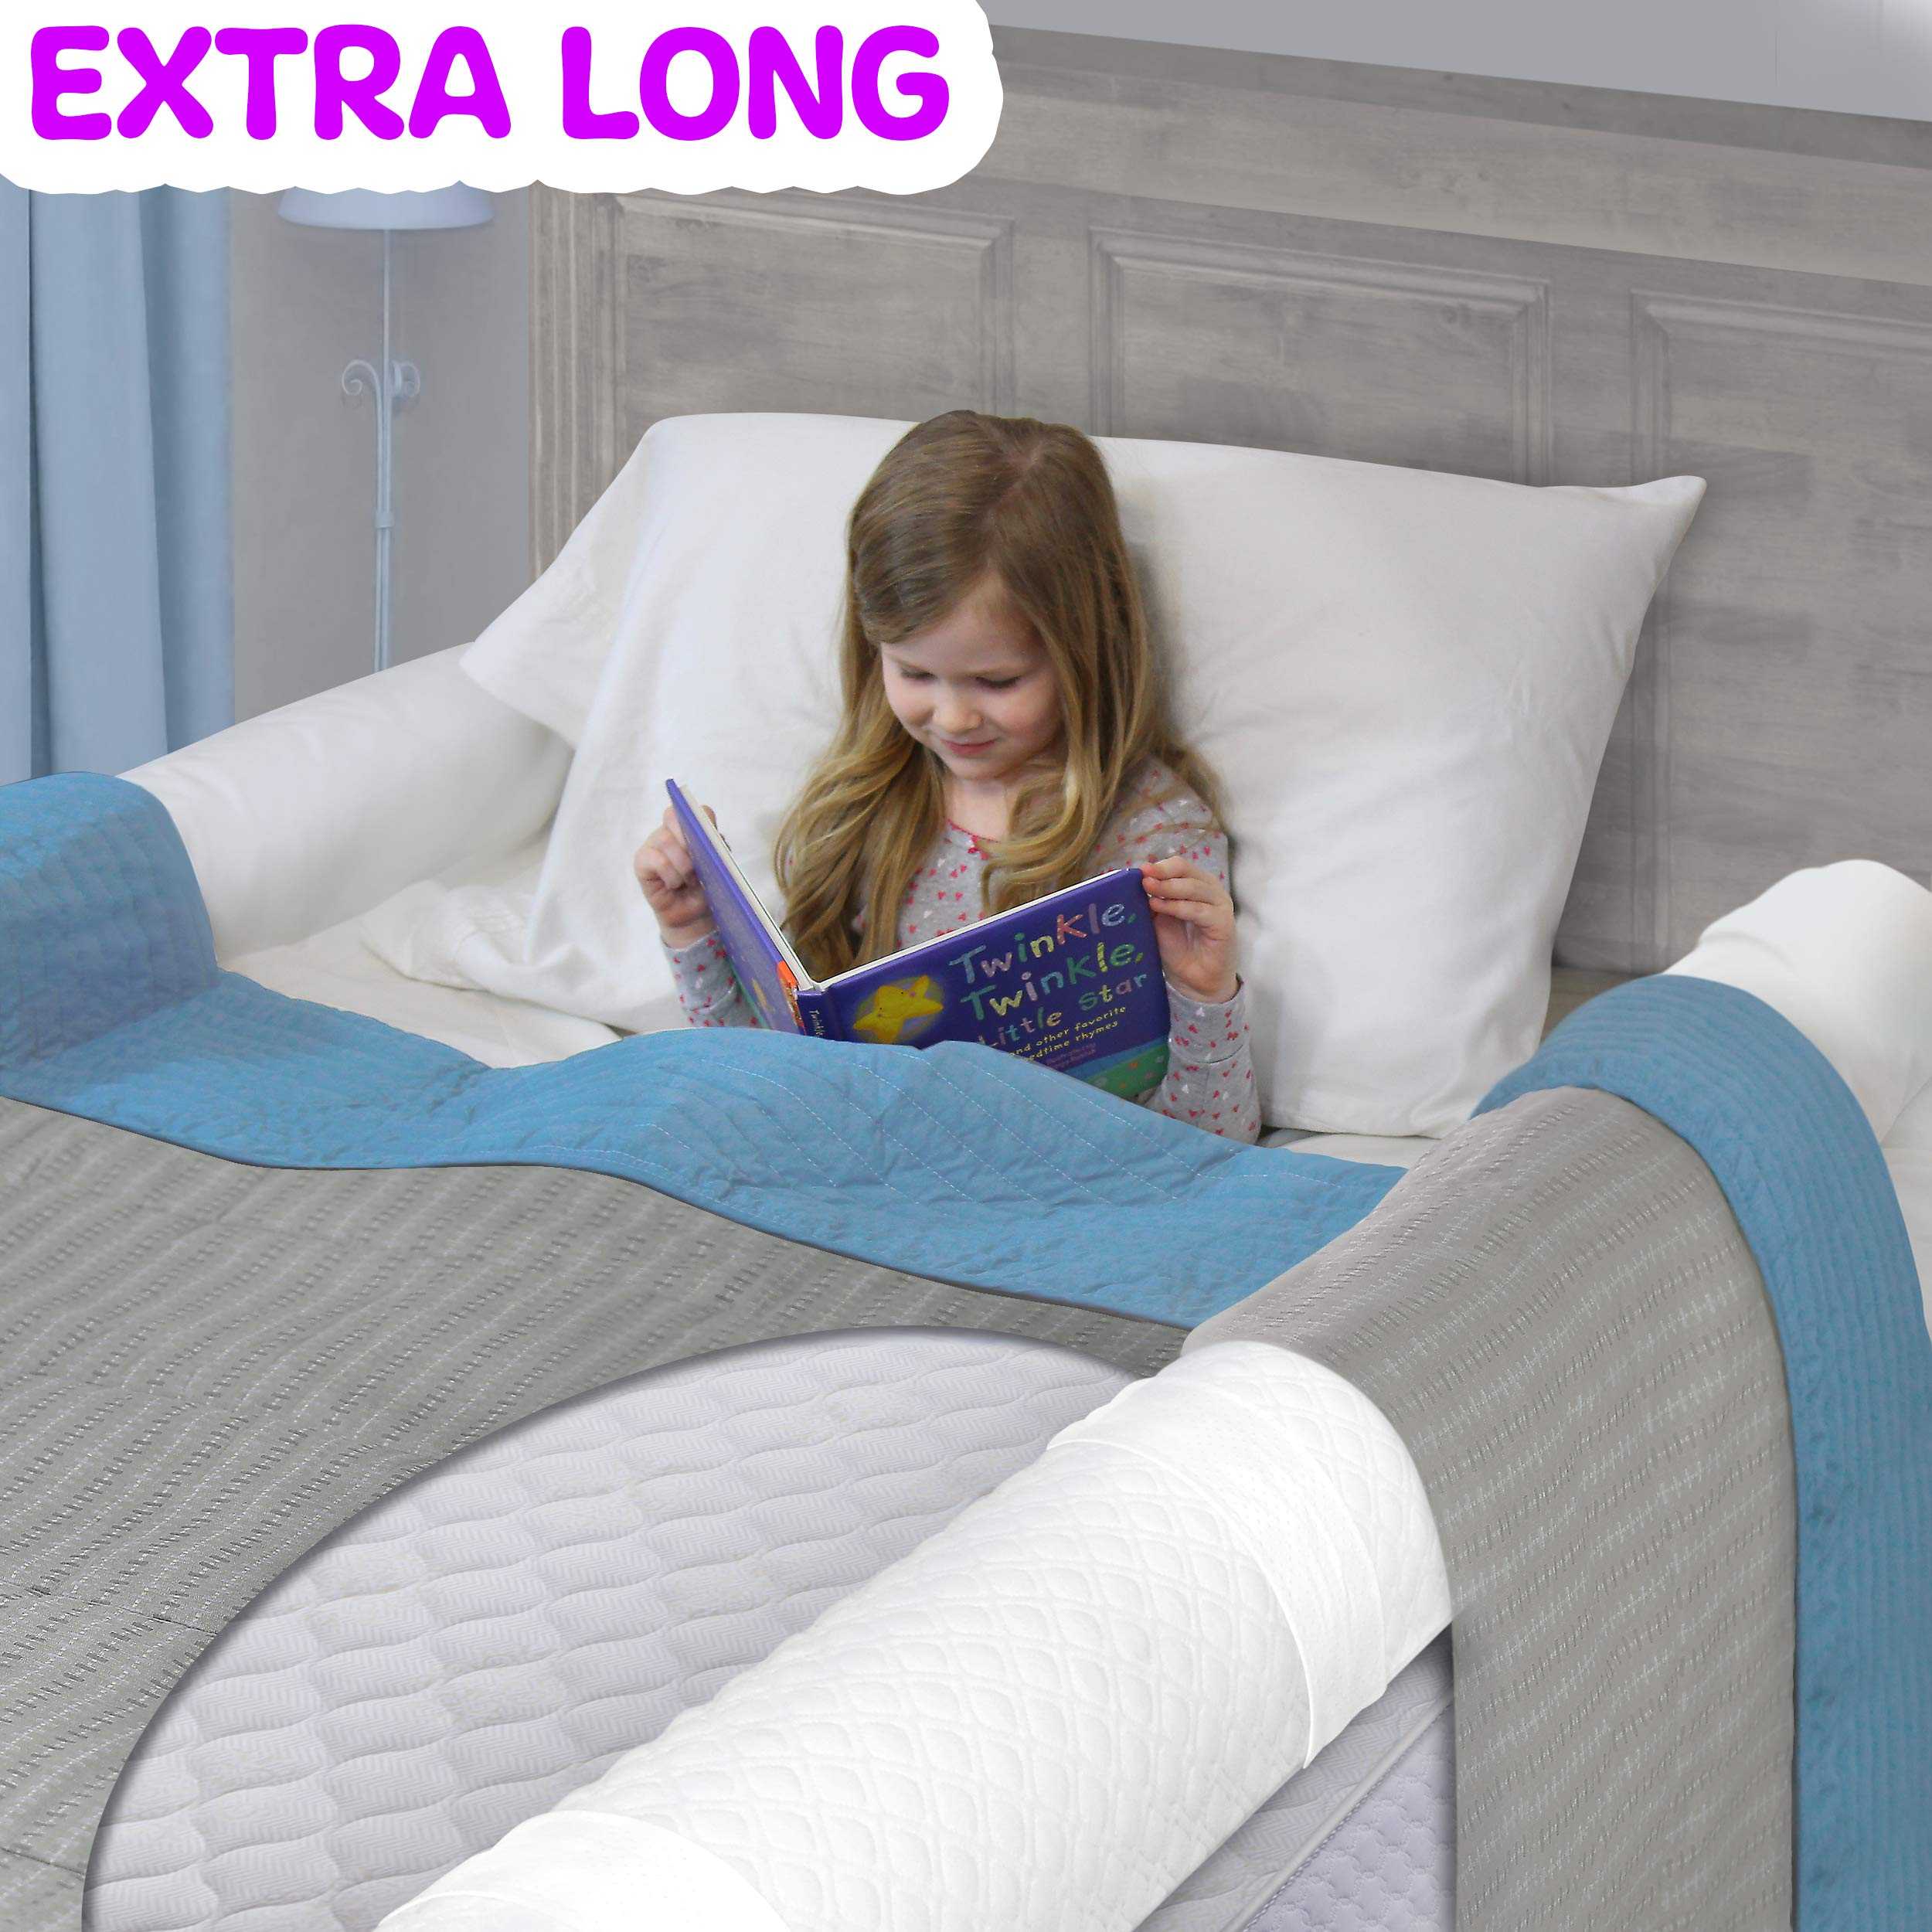 [2-Pack] Extra Long Bed Rails for Toddler | Soft Foam Bed Bumper for Kids, Special Needs, Elderly | Baby Bed Guard | Child Bed Safety Side Rails With Water Resistant Washable Cover